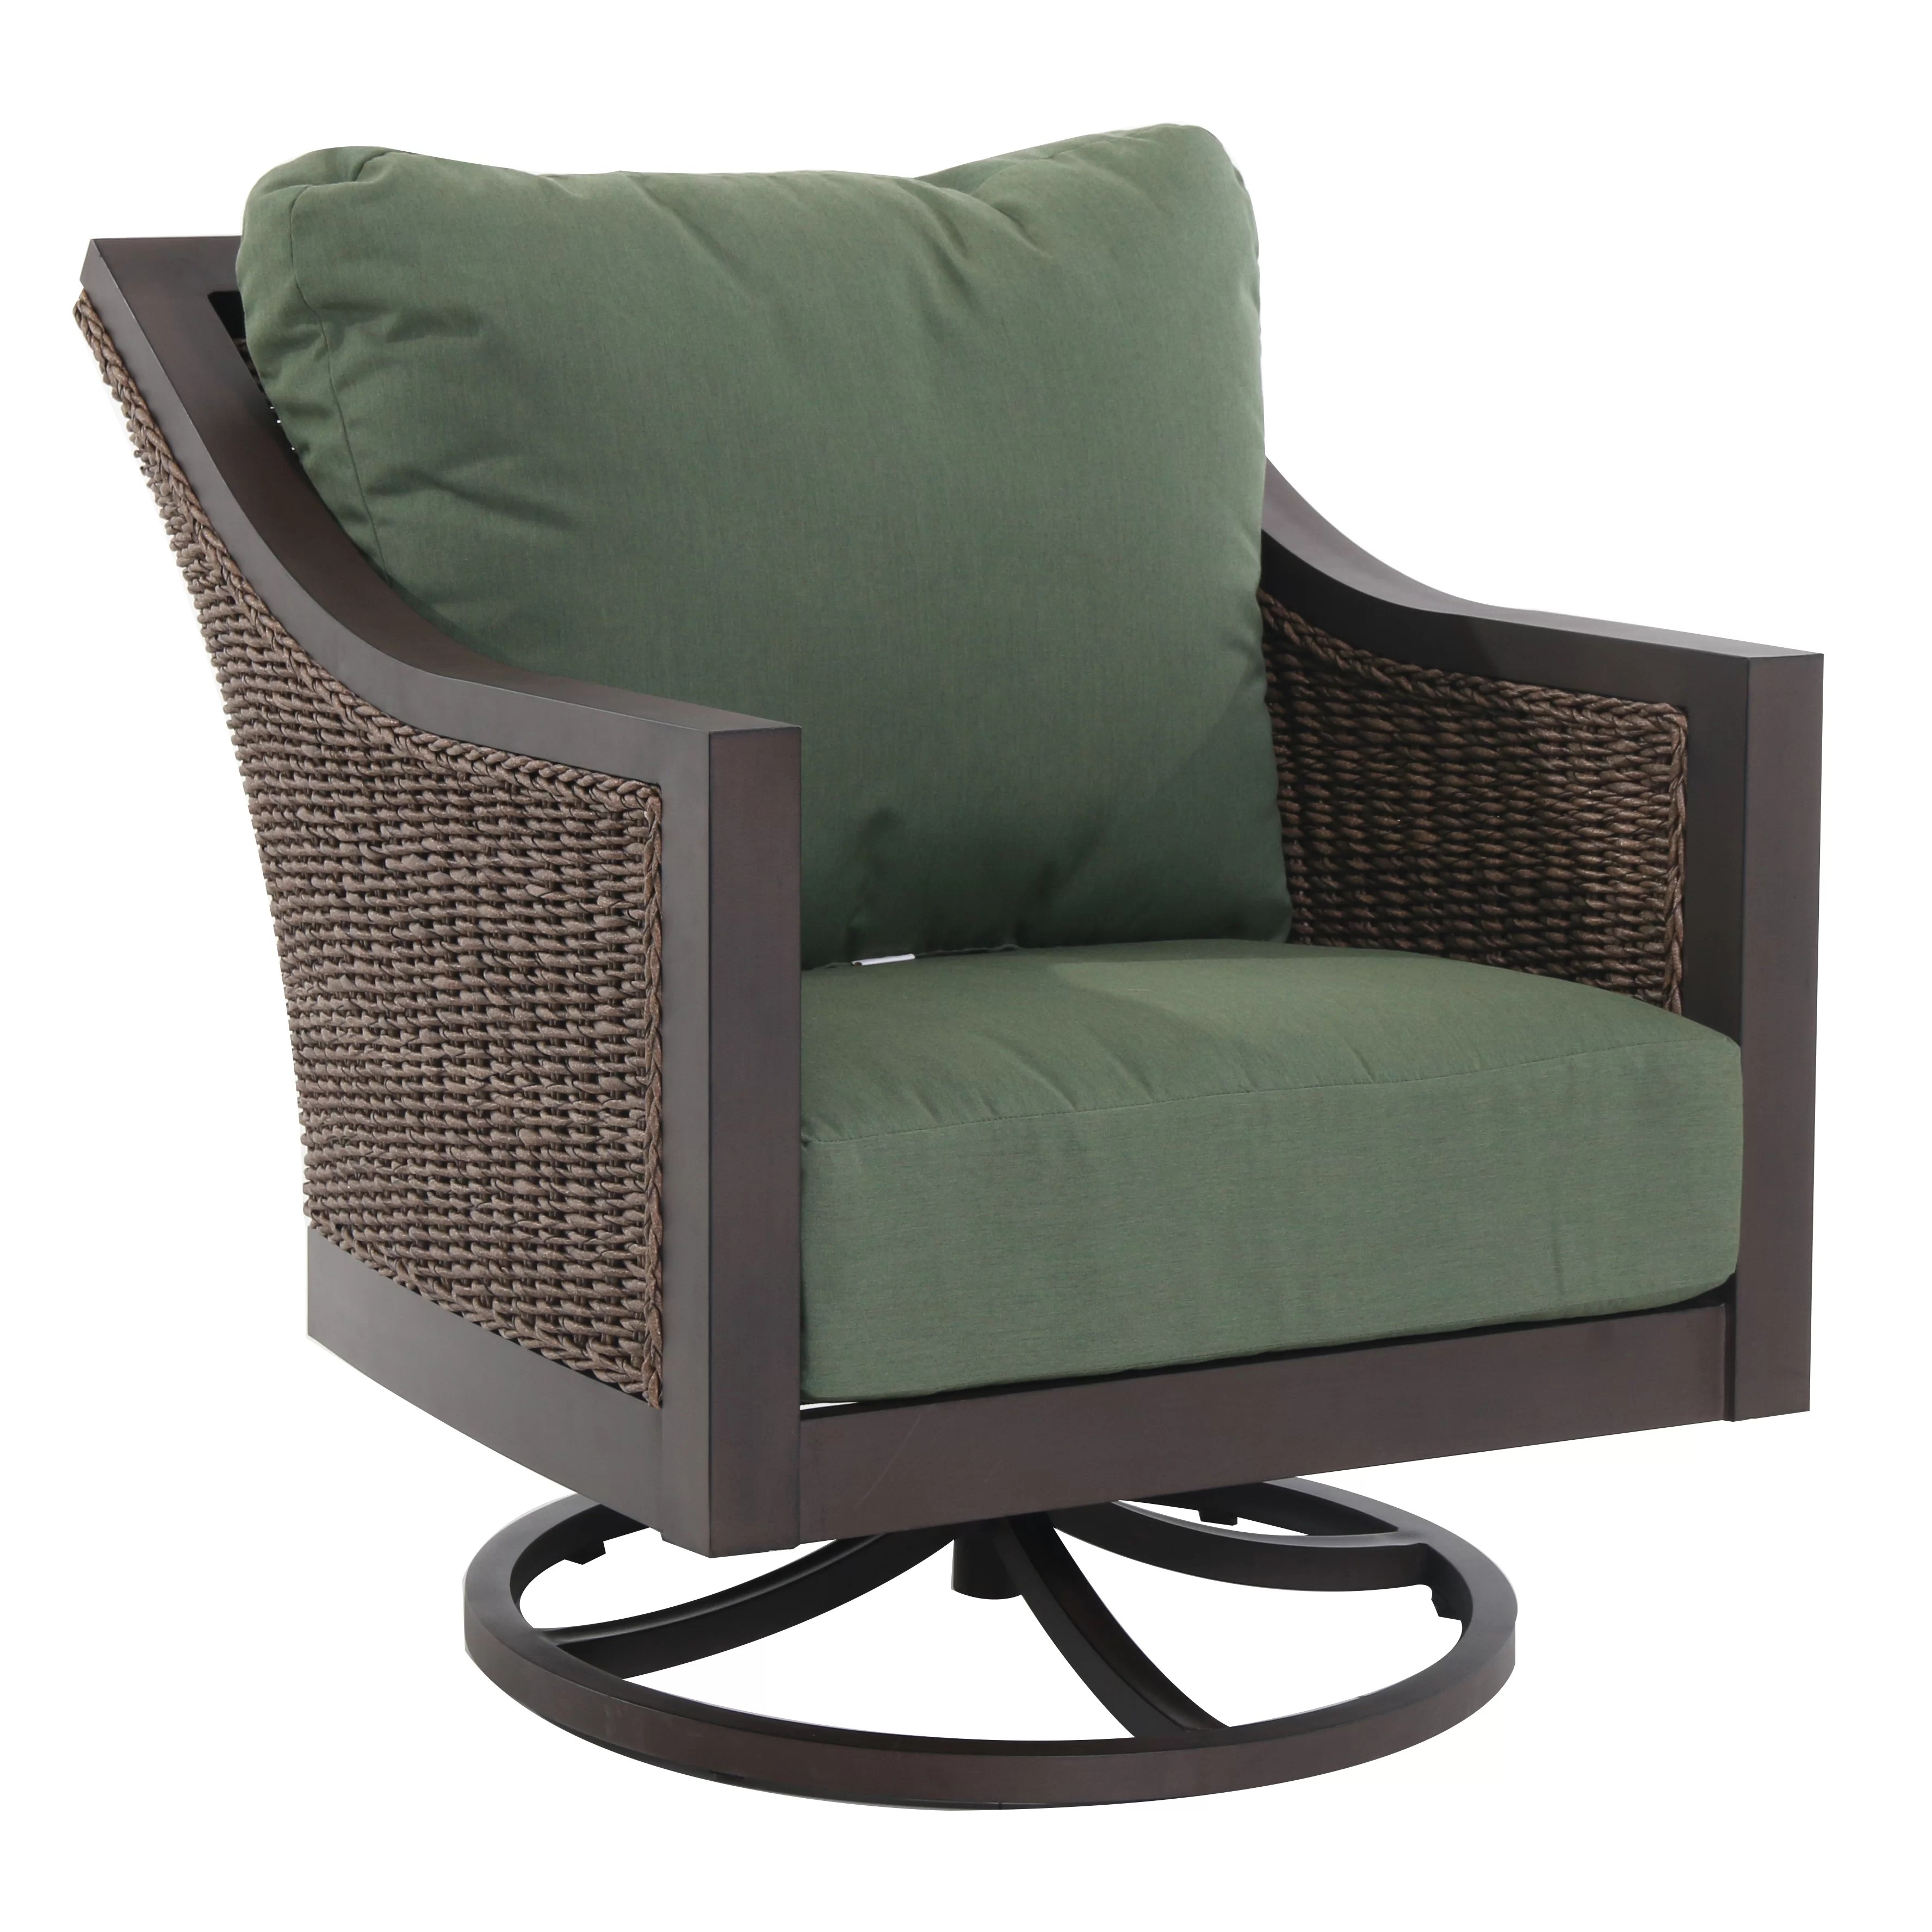 Rocking Chair With Cushions Royal Garden Biscay Swivel Lounge Rocking Chair With